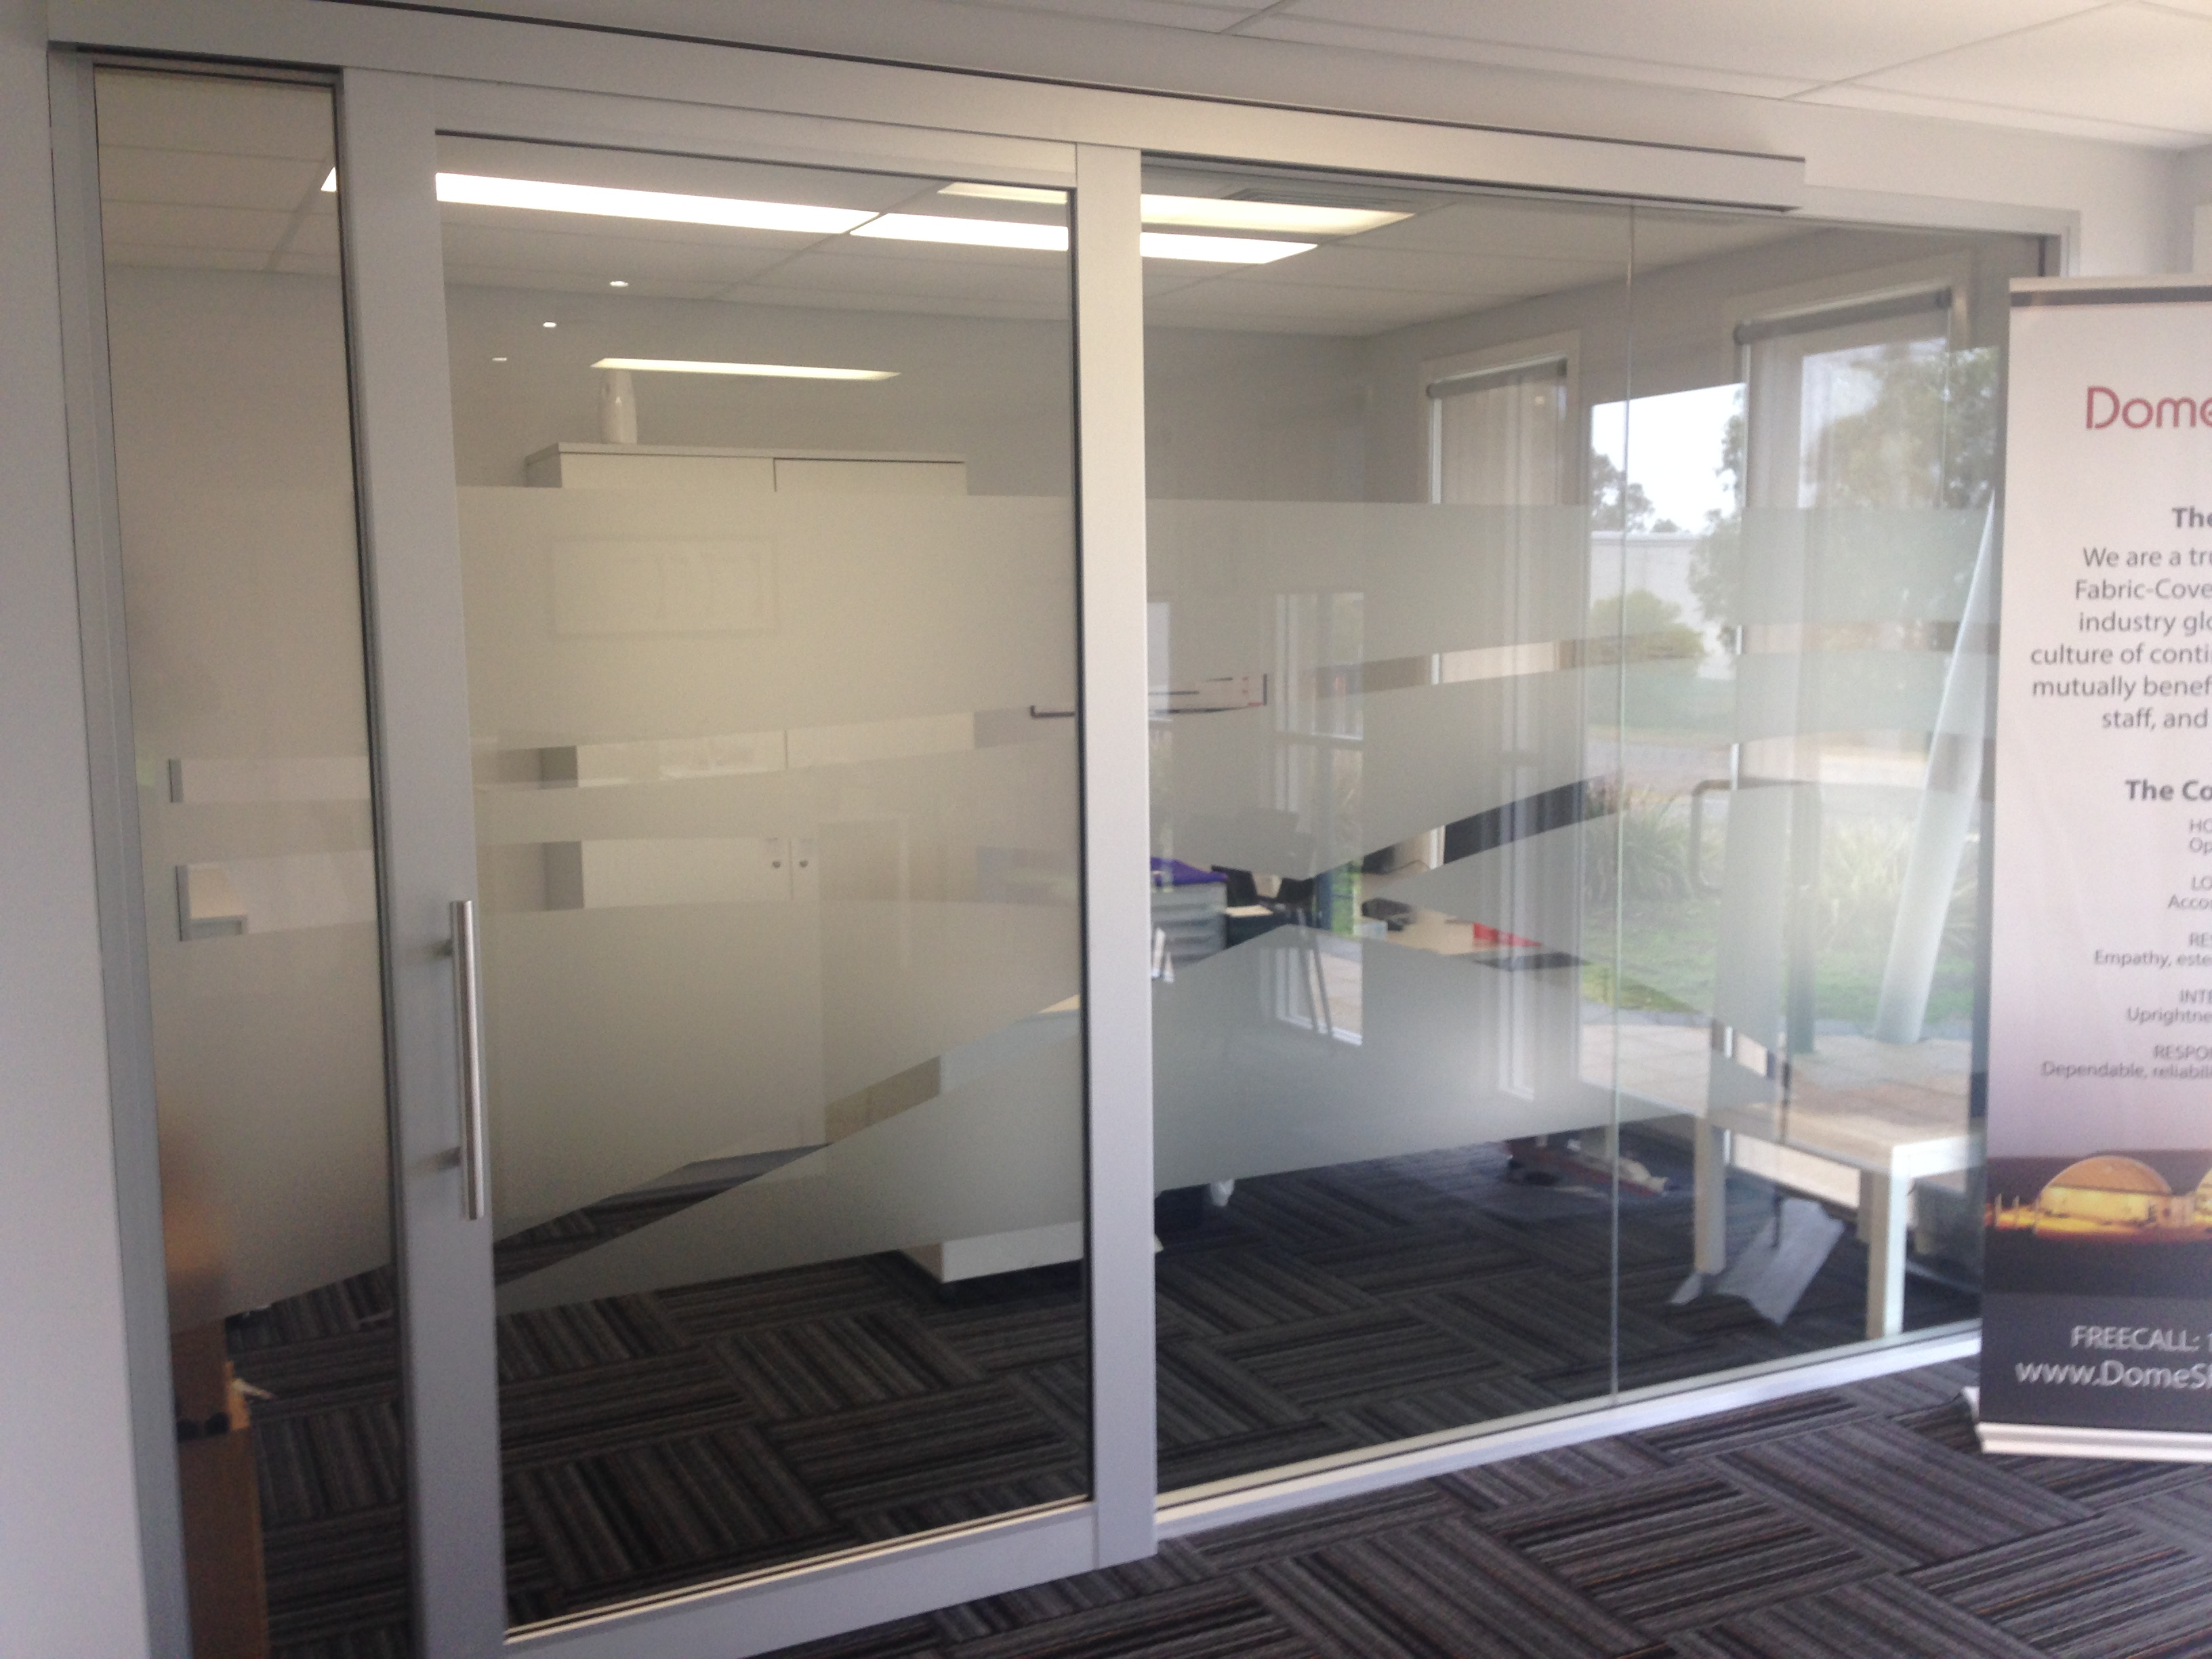 Frosted window film bedford vibe